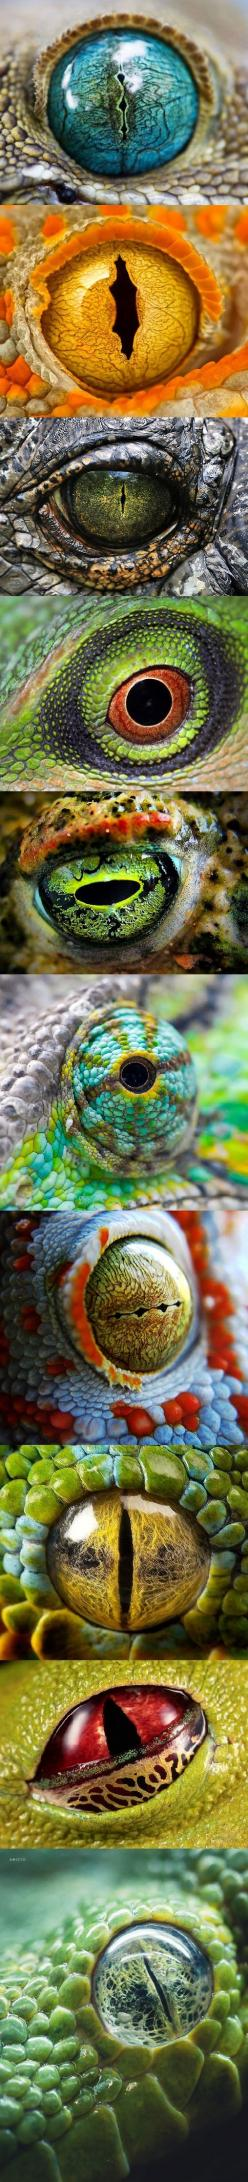 Animal Eyes - Inspiration for glass bead makers.: Animal Eyes, Beautiful Animal, Reptilian Eye, Eyes Animal, Reptile Eyes, Dragon Eye, Amazing Animal, Beautiful Eye